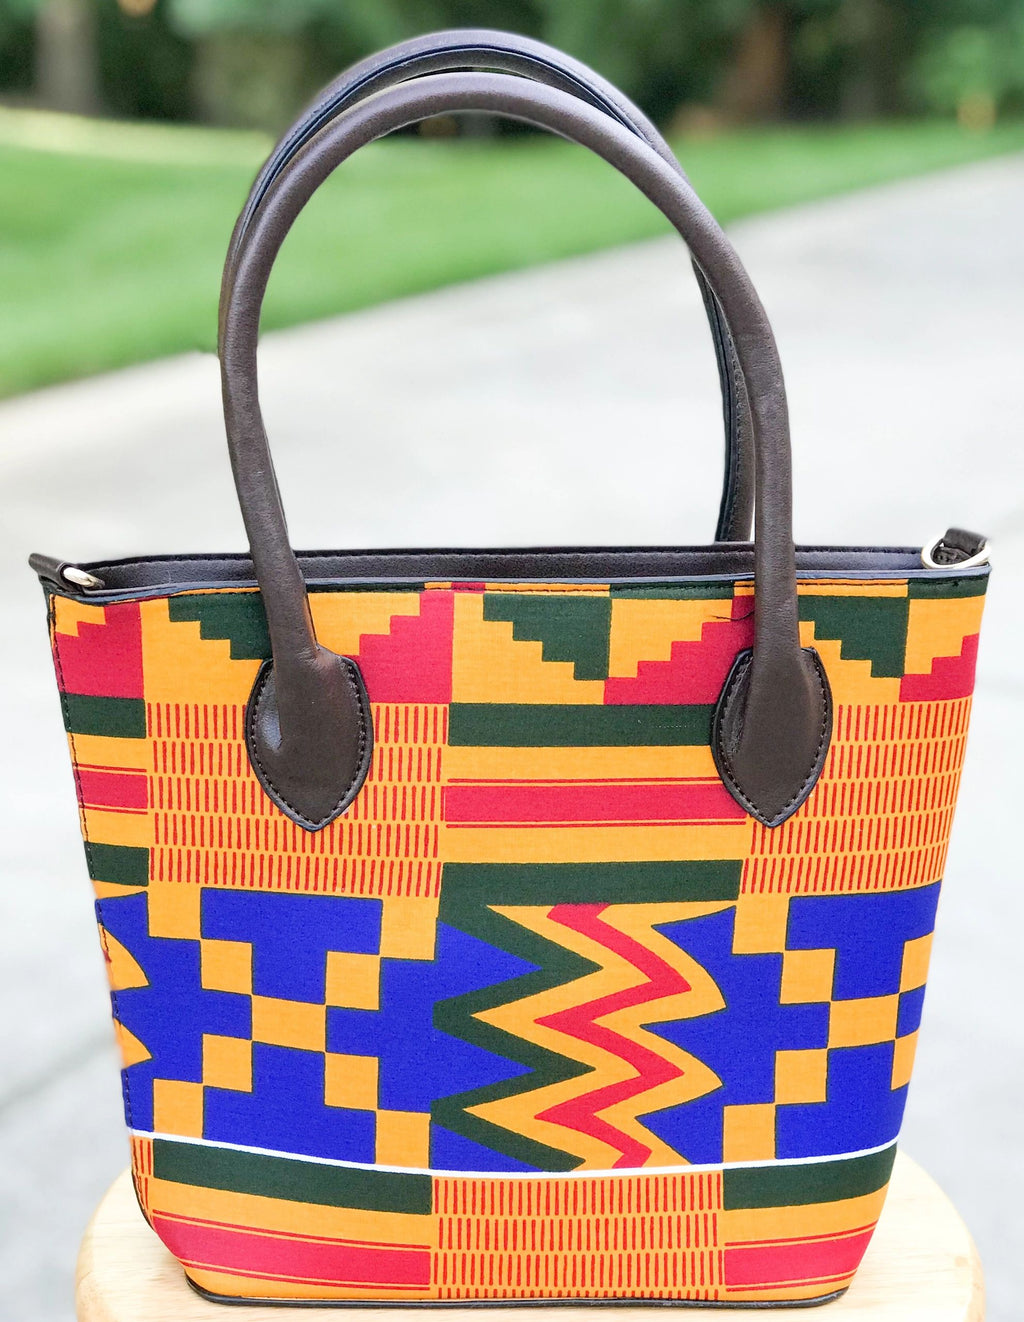 Kente keji Mini Tote